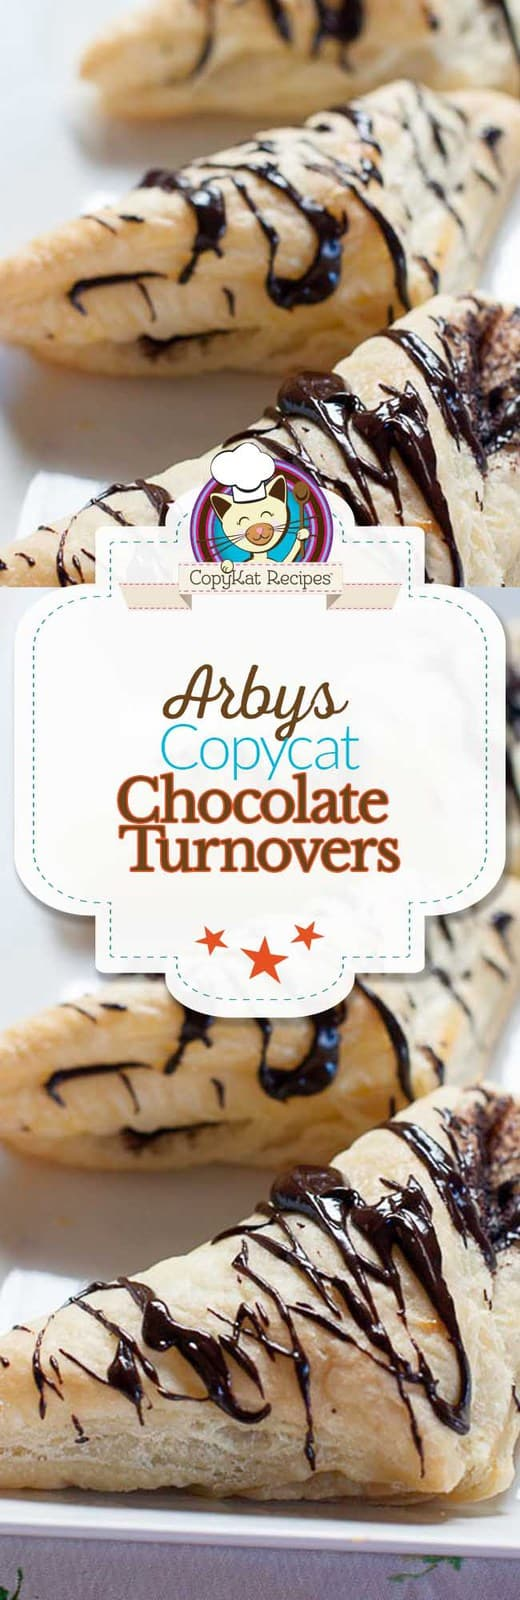 You can recreate Arbys chocolate turnovers at home with this easy recipe.    You will love this copycat recipe.